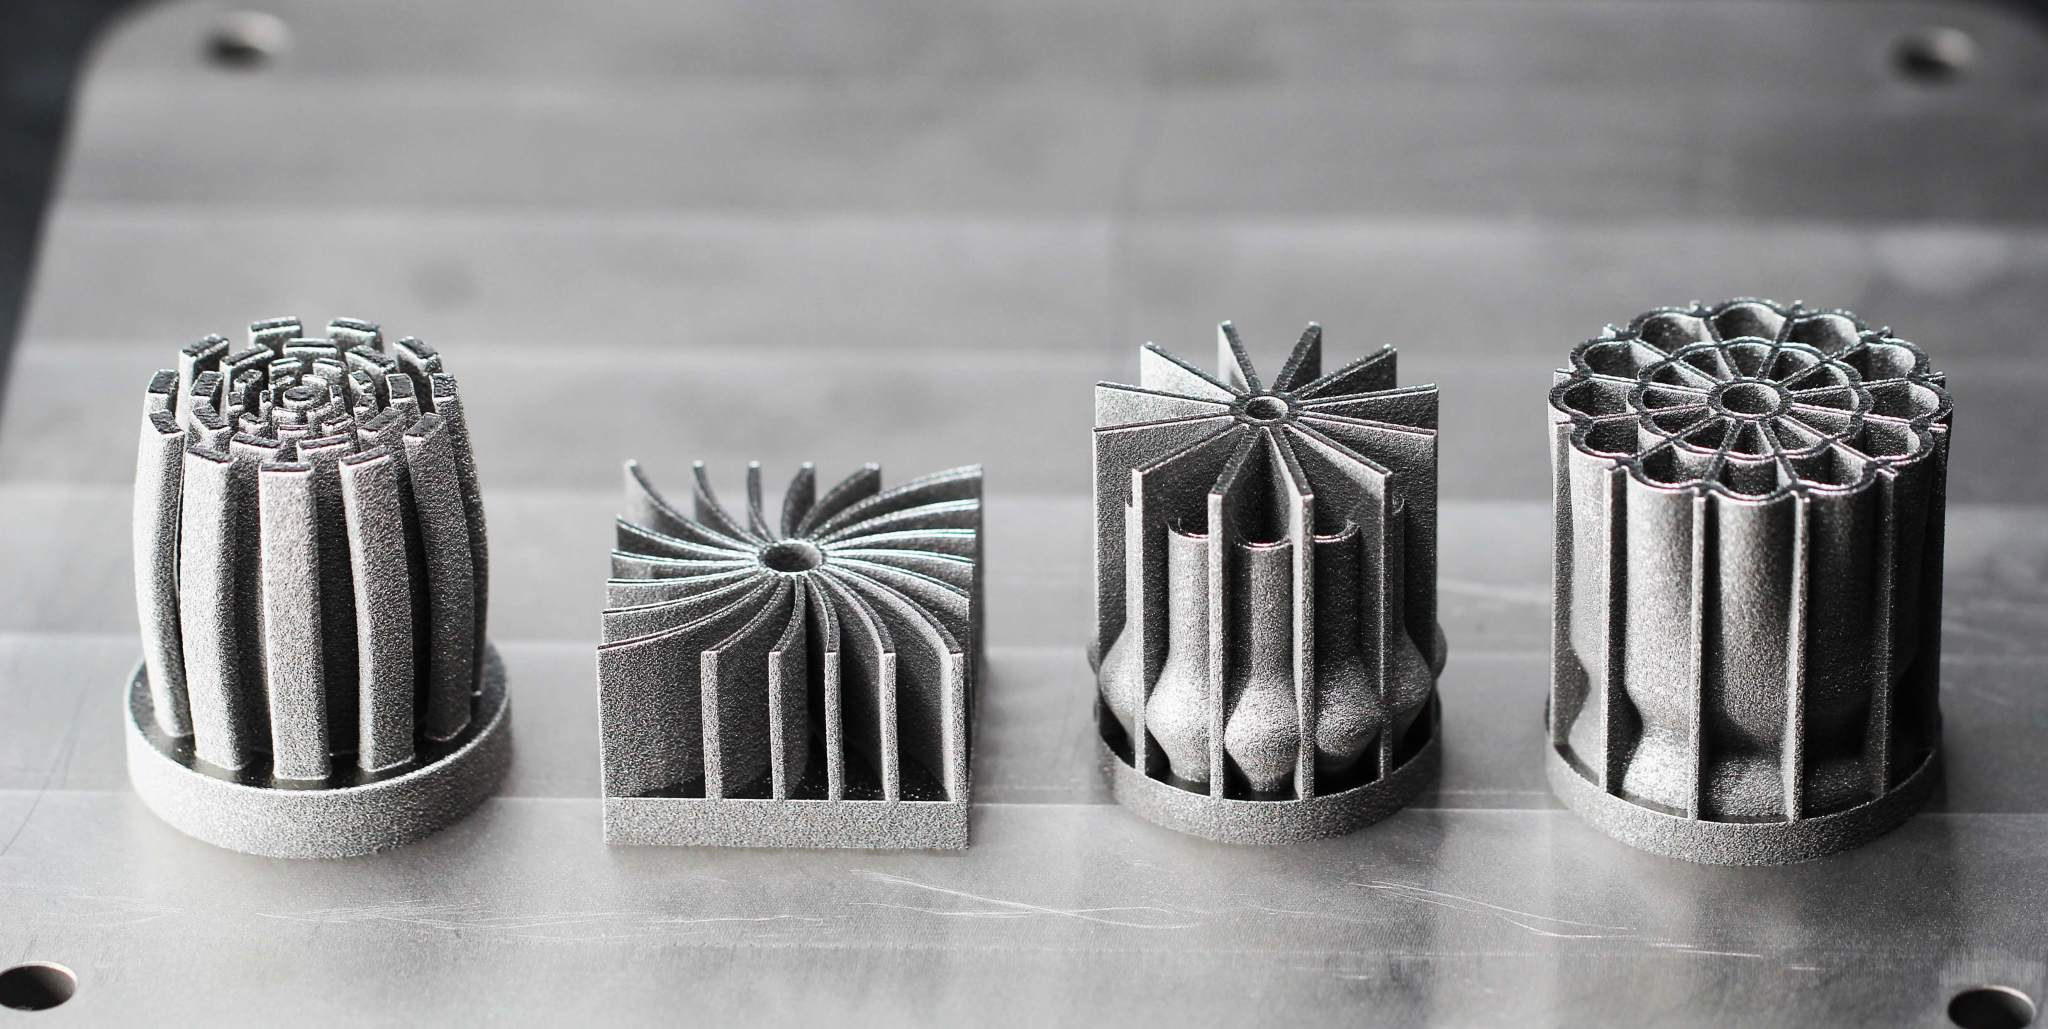 3D printed metal heat sinks.